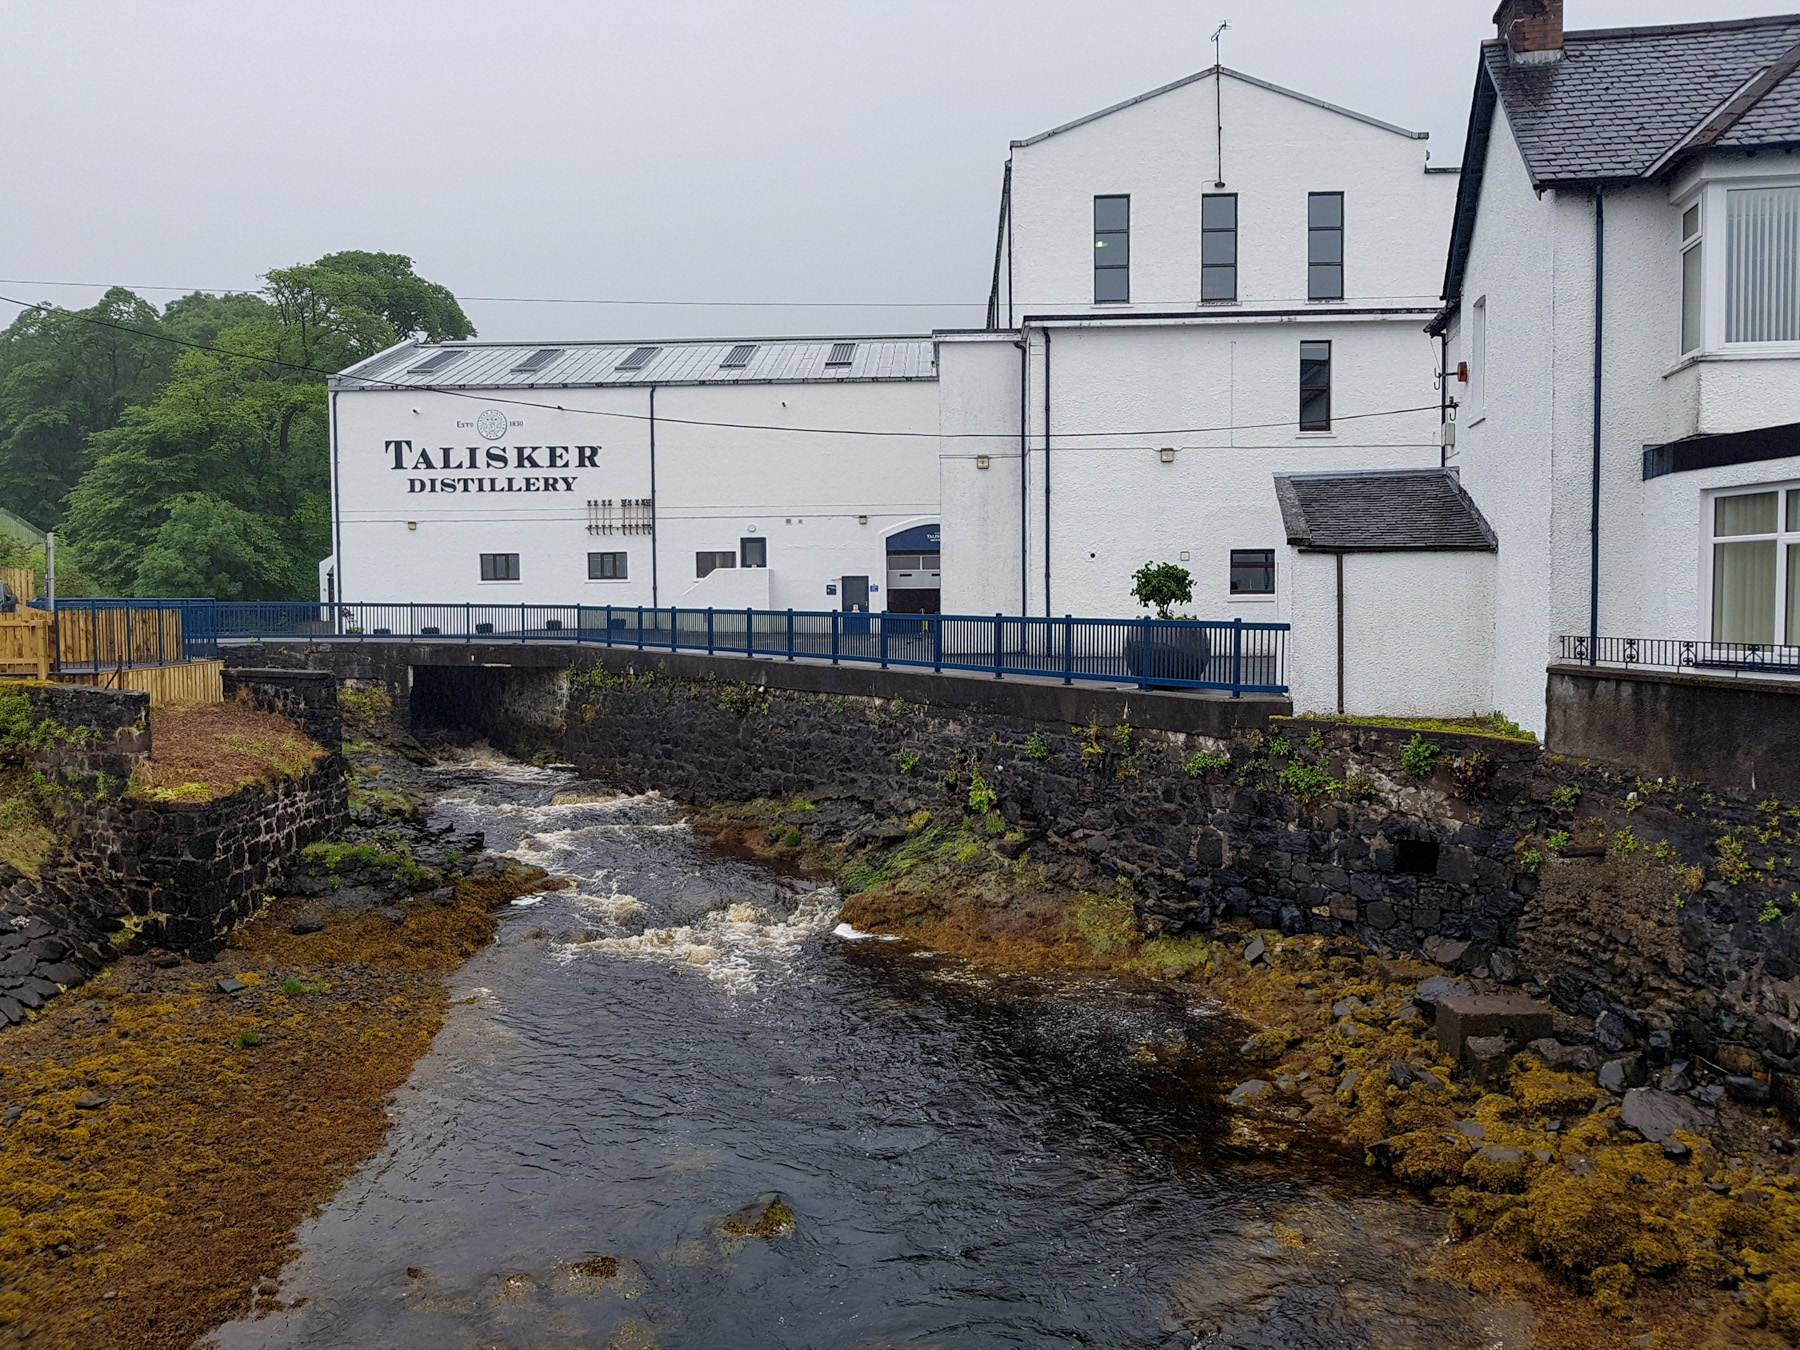 Talisker Distillery The Northern Highlands and the Western Isles, Venturing to the Highlands of Scotland - Reeves Do Travel